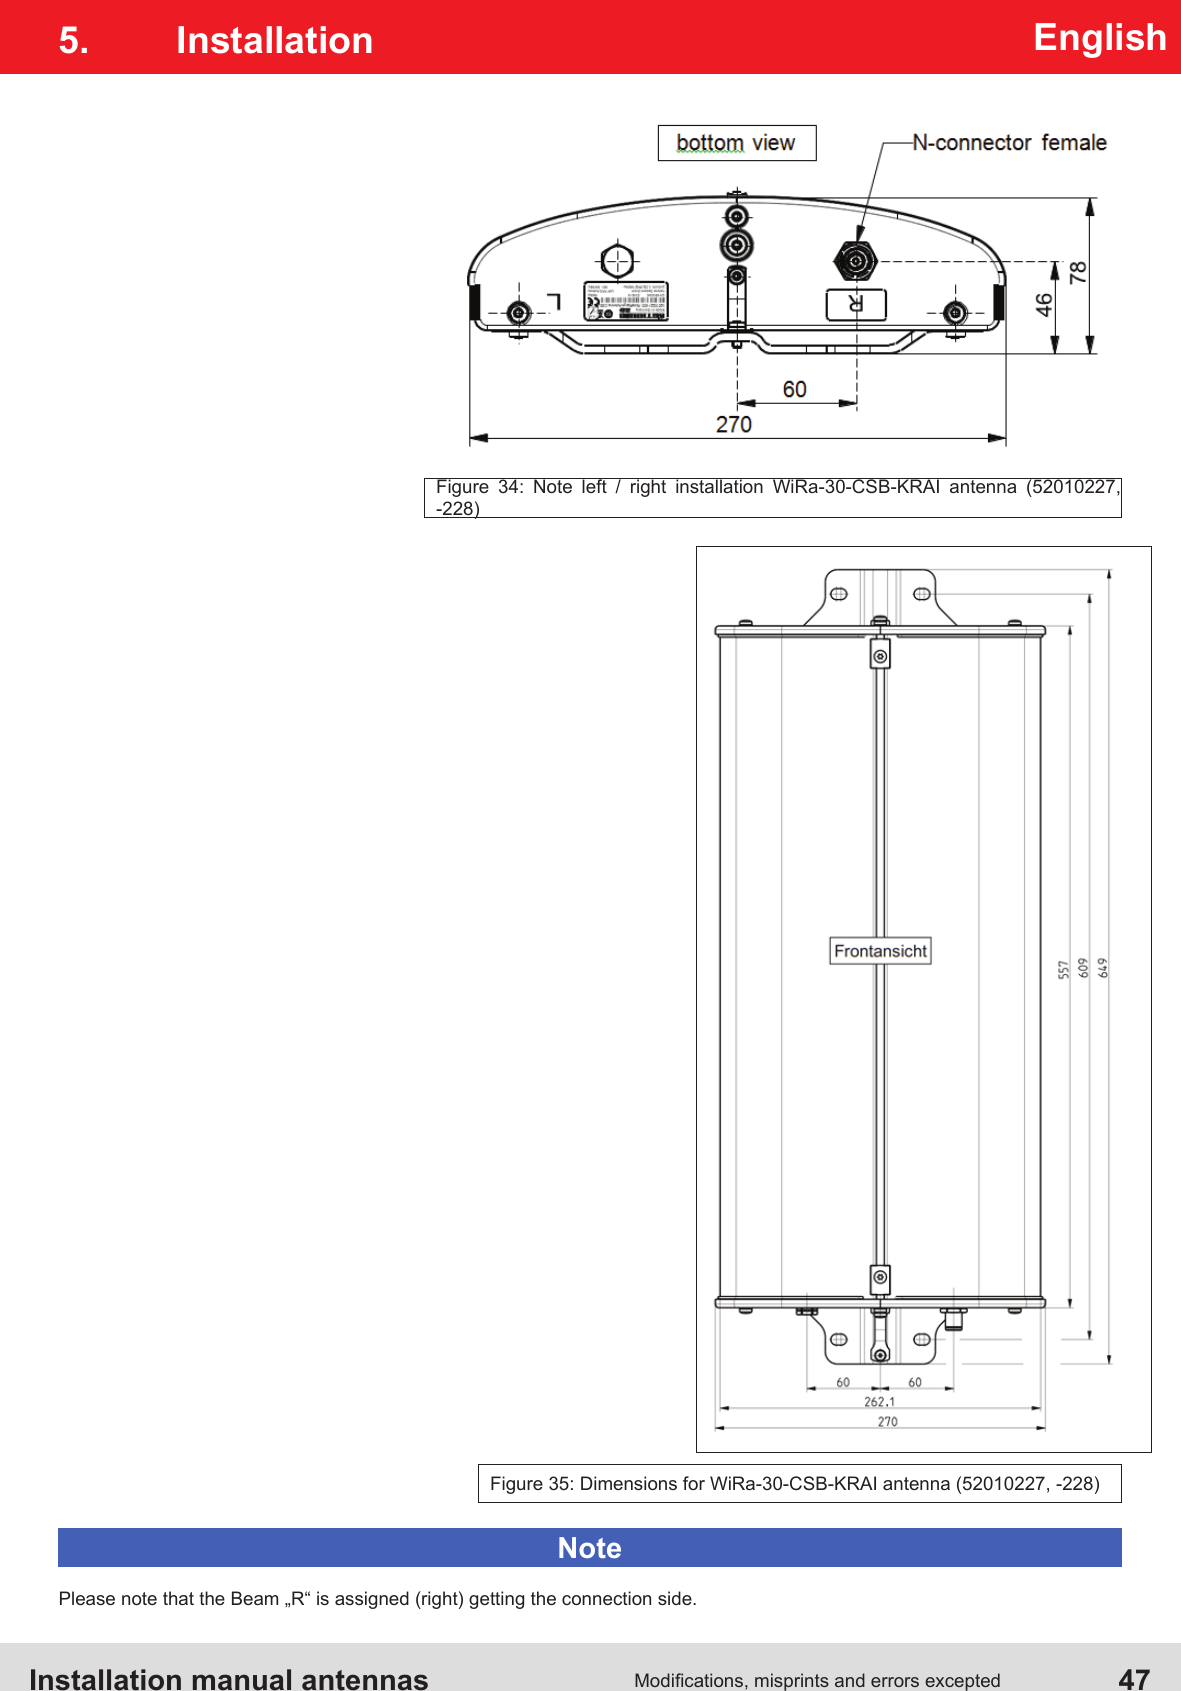 "Installation manual antennas   47Modications, misprints and errors exceptedEnglishFigure 35: Dimensions for WiRa-30-CSB-KRAI antenna (52010227, -228)Figure 34: Note left / right installation WiRa-30-CSB-KRAI antenna (52010227, -228)5. InstallationPlease note that the Beam ""R"" is assigned (right) getting the connection side.Note"